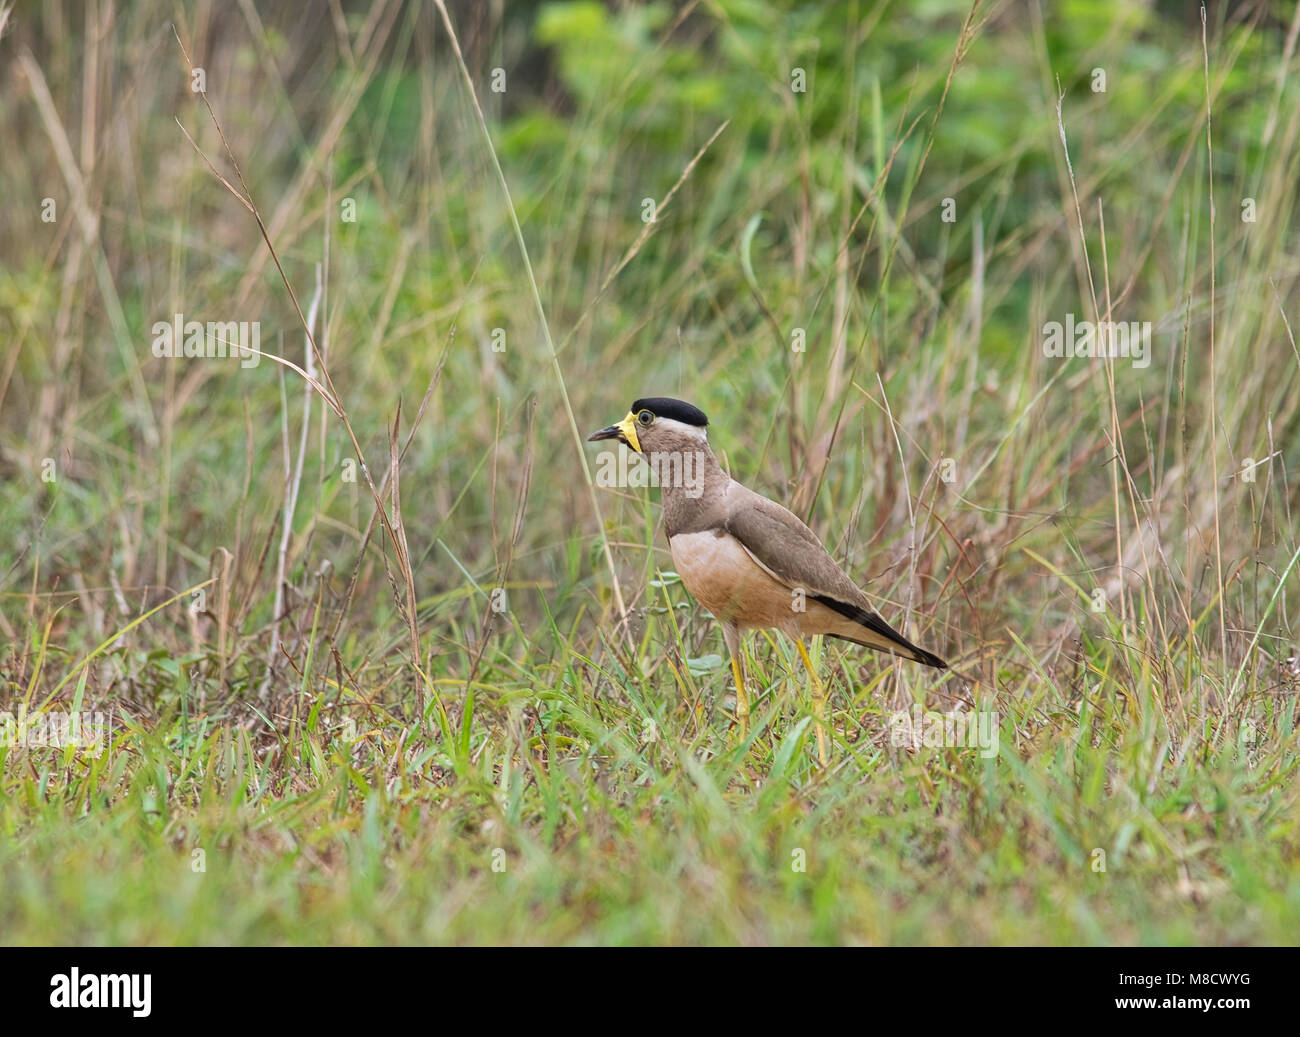 A yellow wattled lapwing bird, Vanellus malabaricus, looking for food in a grass field in Indian subcontinent. - Stock Image